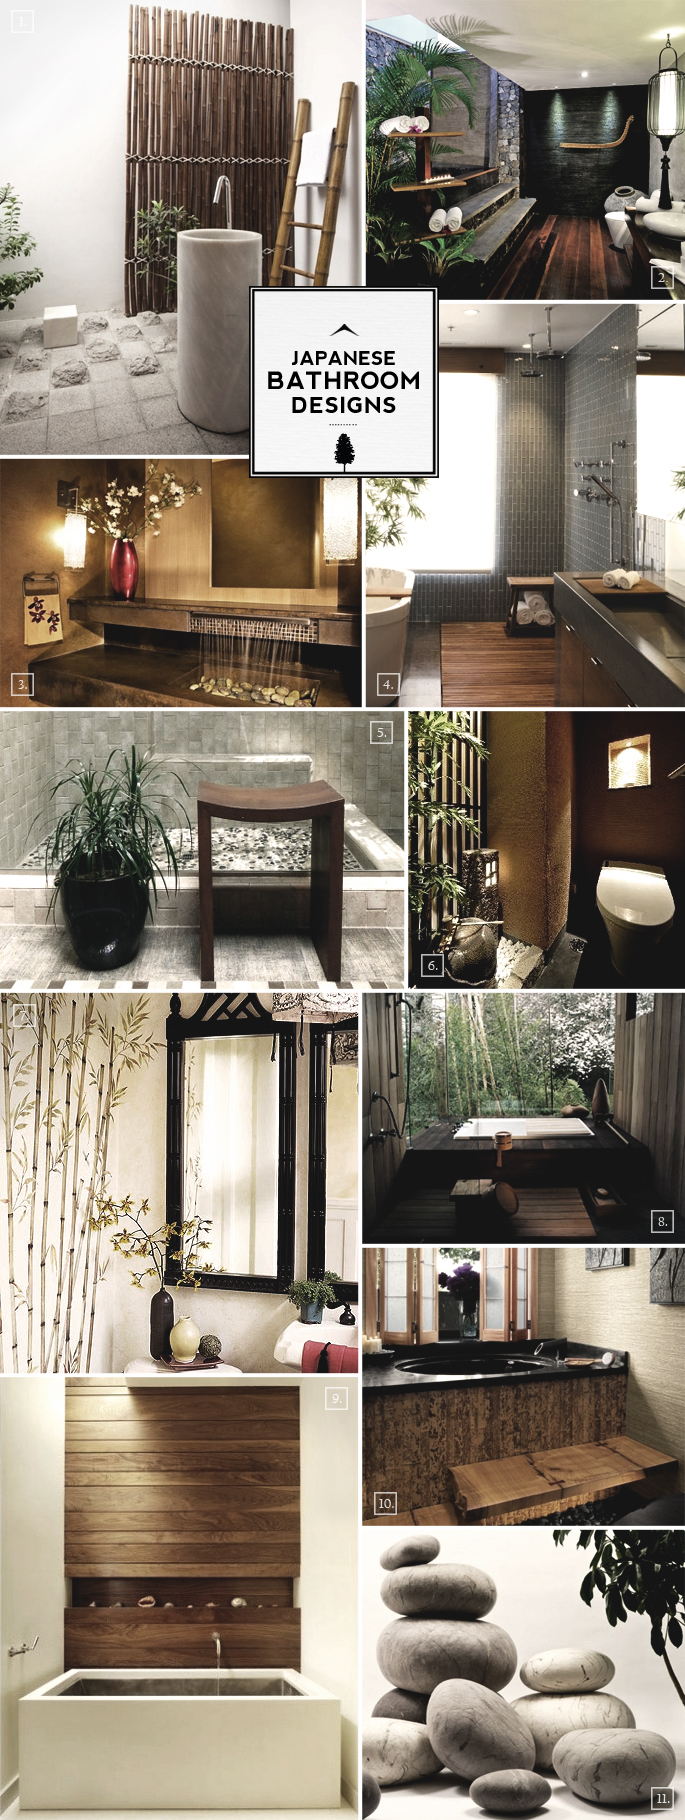 Zen bathroom designs photos joy studio design gallery for Bathroom ideas japanese